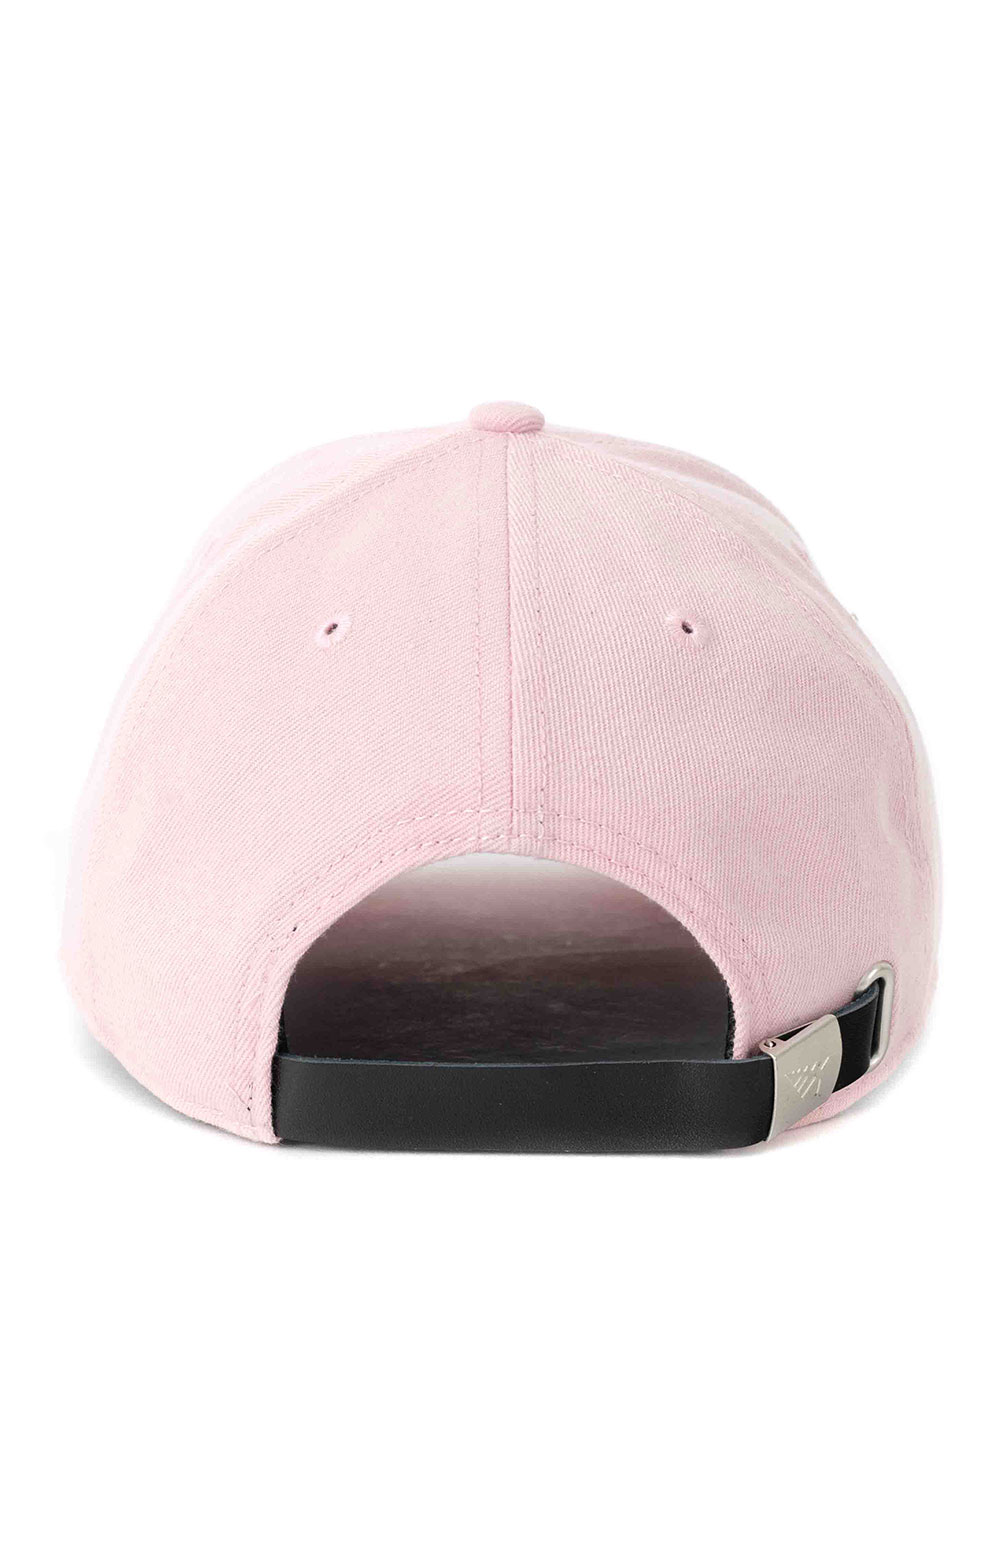 Icon II Dad Hat - Washed Pink  3